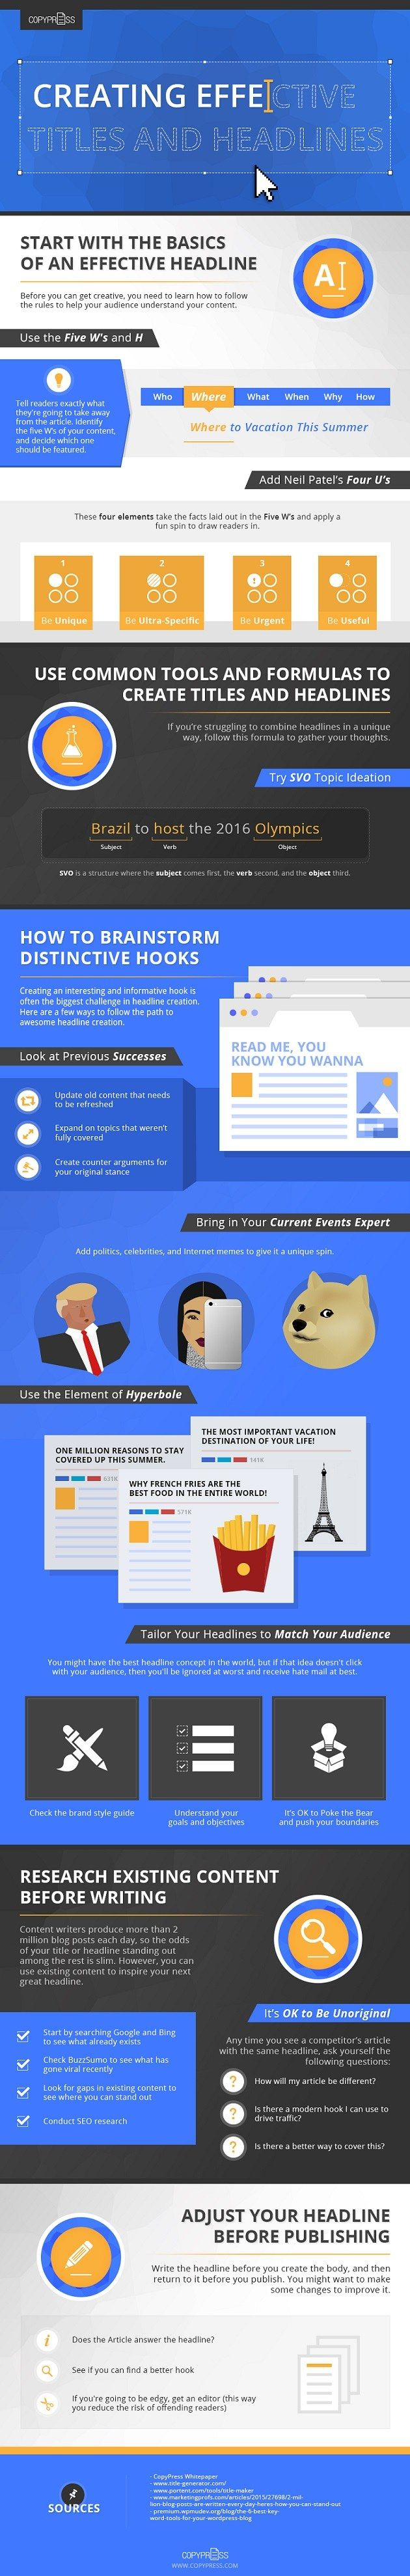 Writing - How to Create Eye-Catching and Effective Headlines [Infographic] : MarketingProfs Article